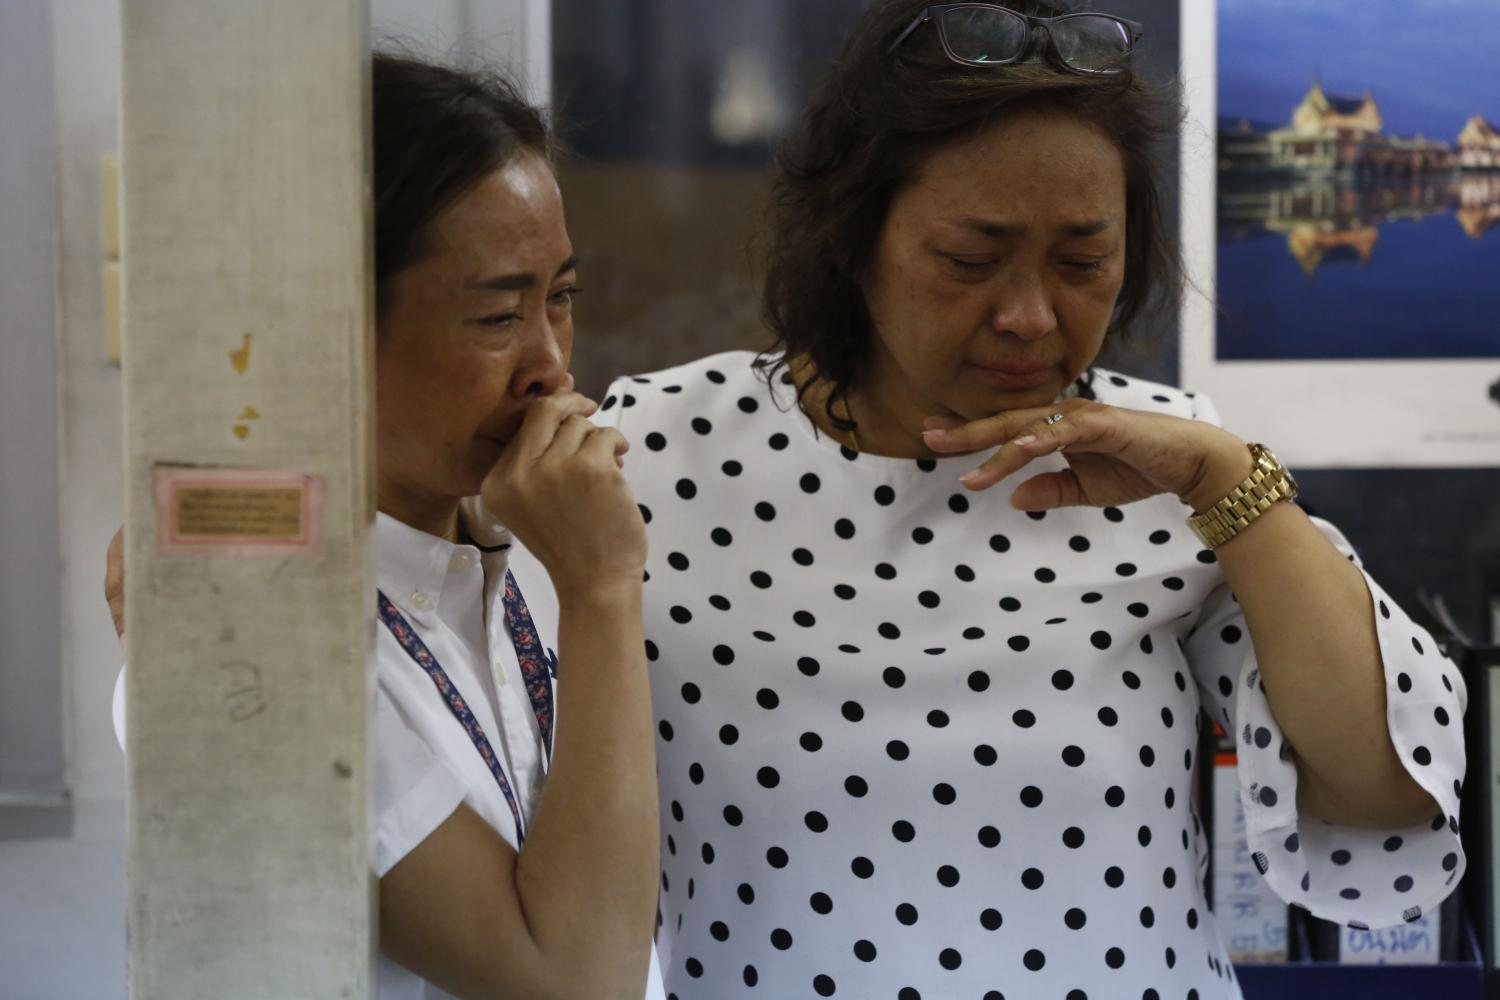 Staff of the Business Organisation of the Office of the Welfare Promotion Commission for Teachers and Educational Personnel cry after learning they have been laid off.  photos by Pornprom Satrabhaya